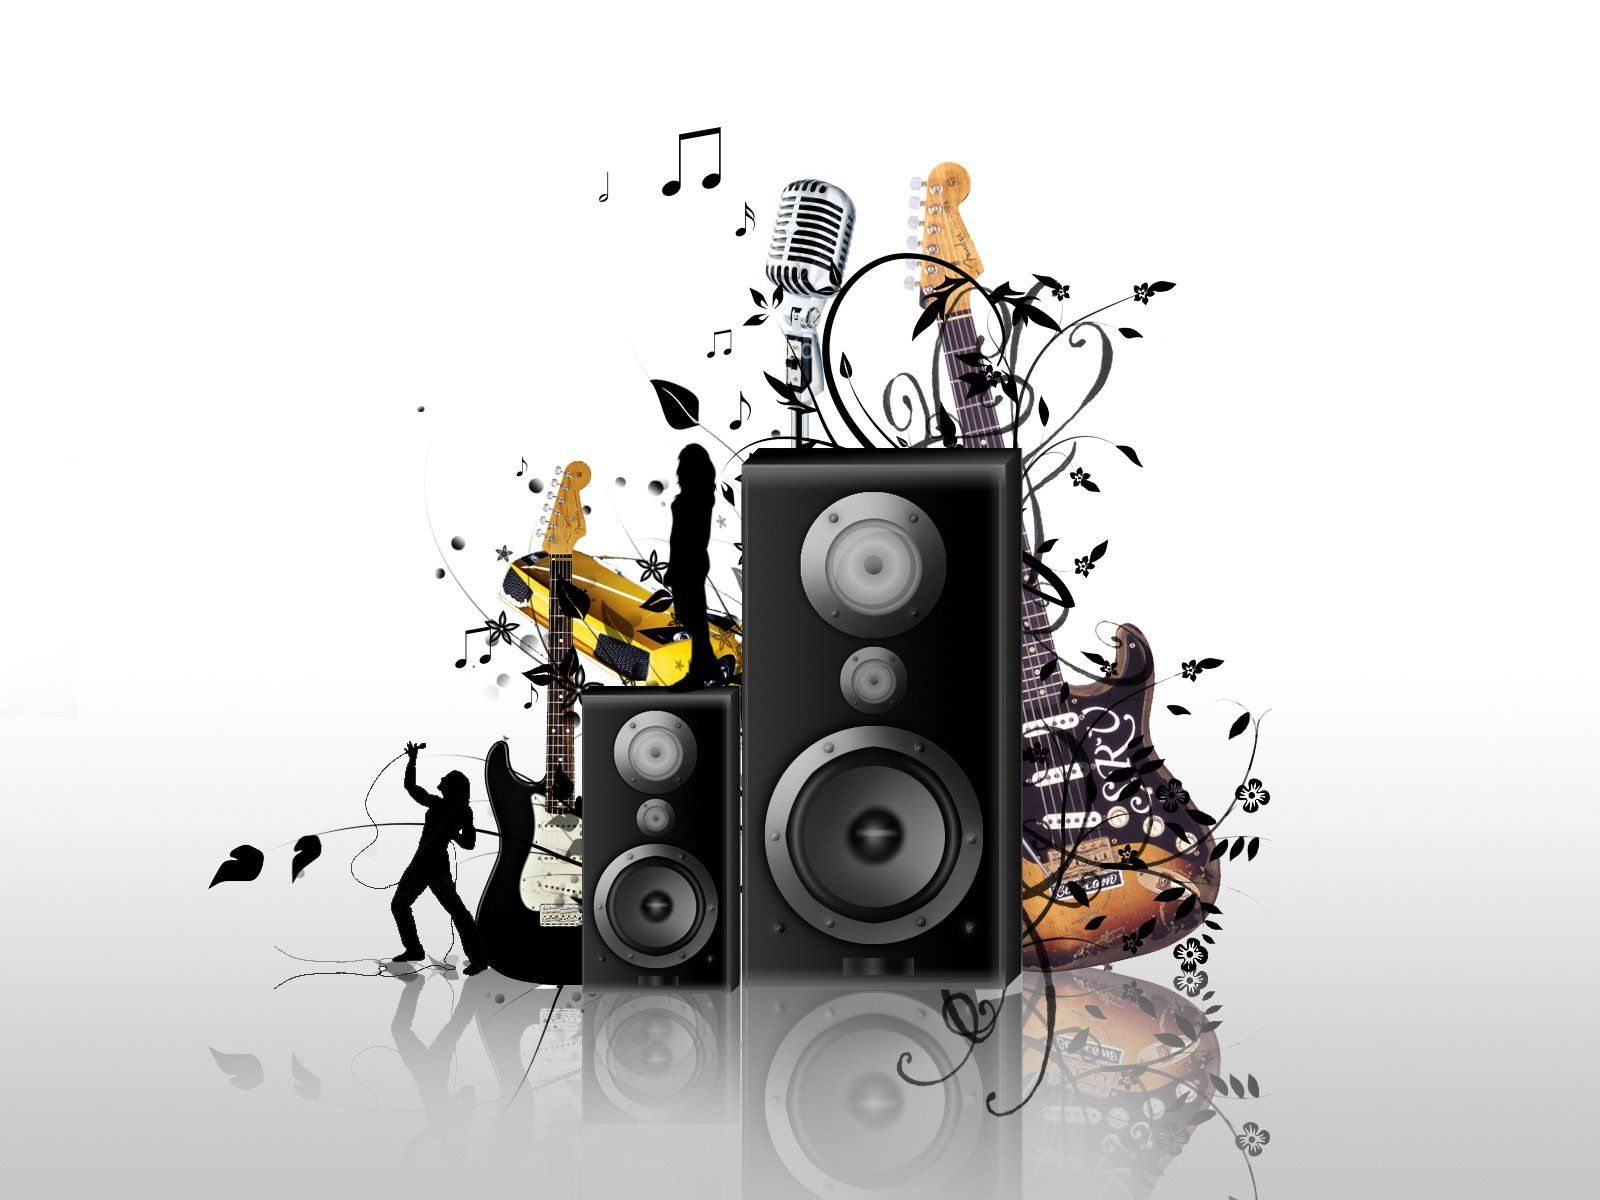 Wallpaper download music - Cool Hd Music Wallpapers